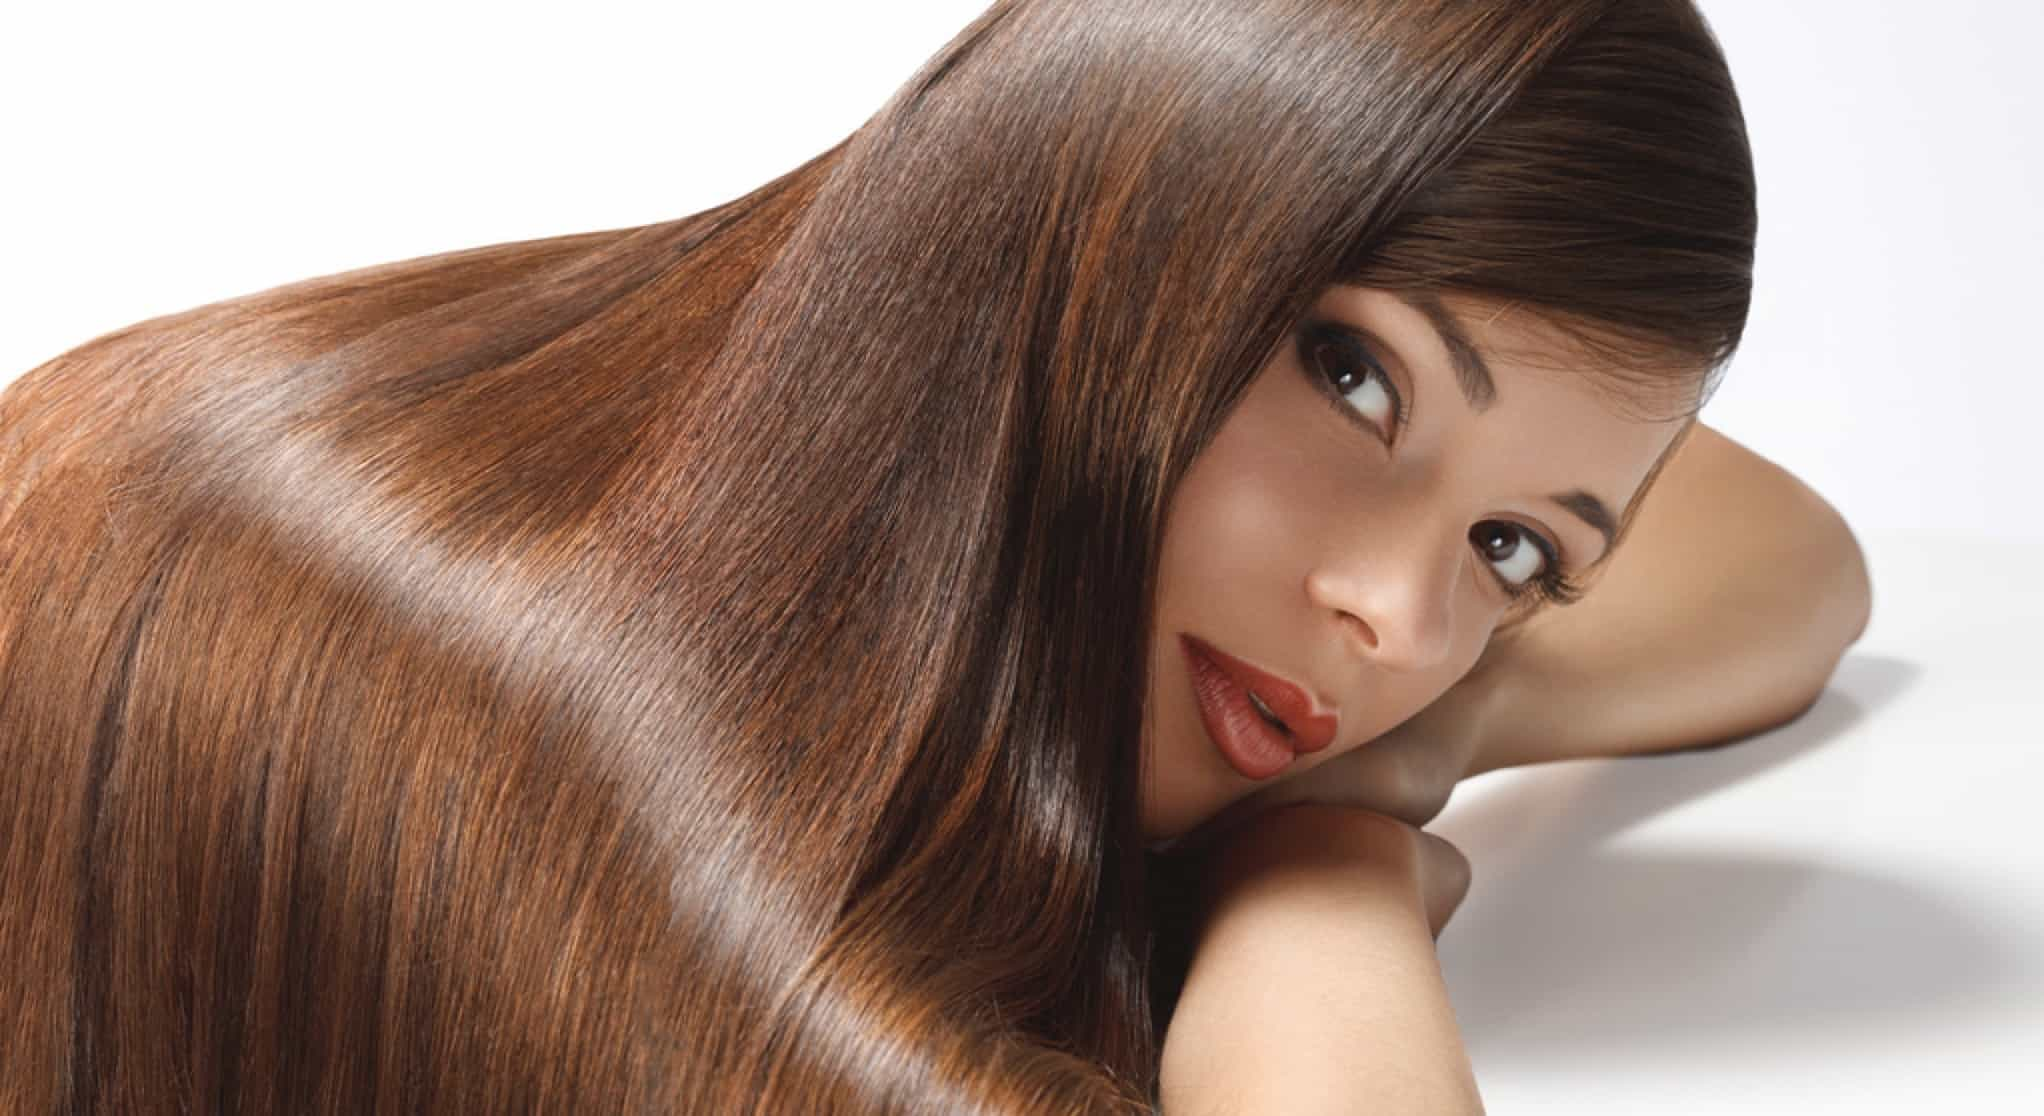 arlington keratin hair straightening